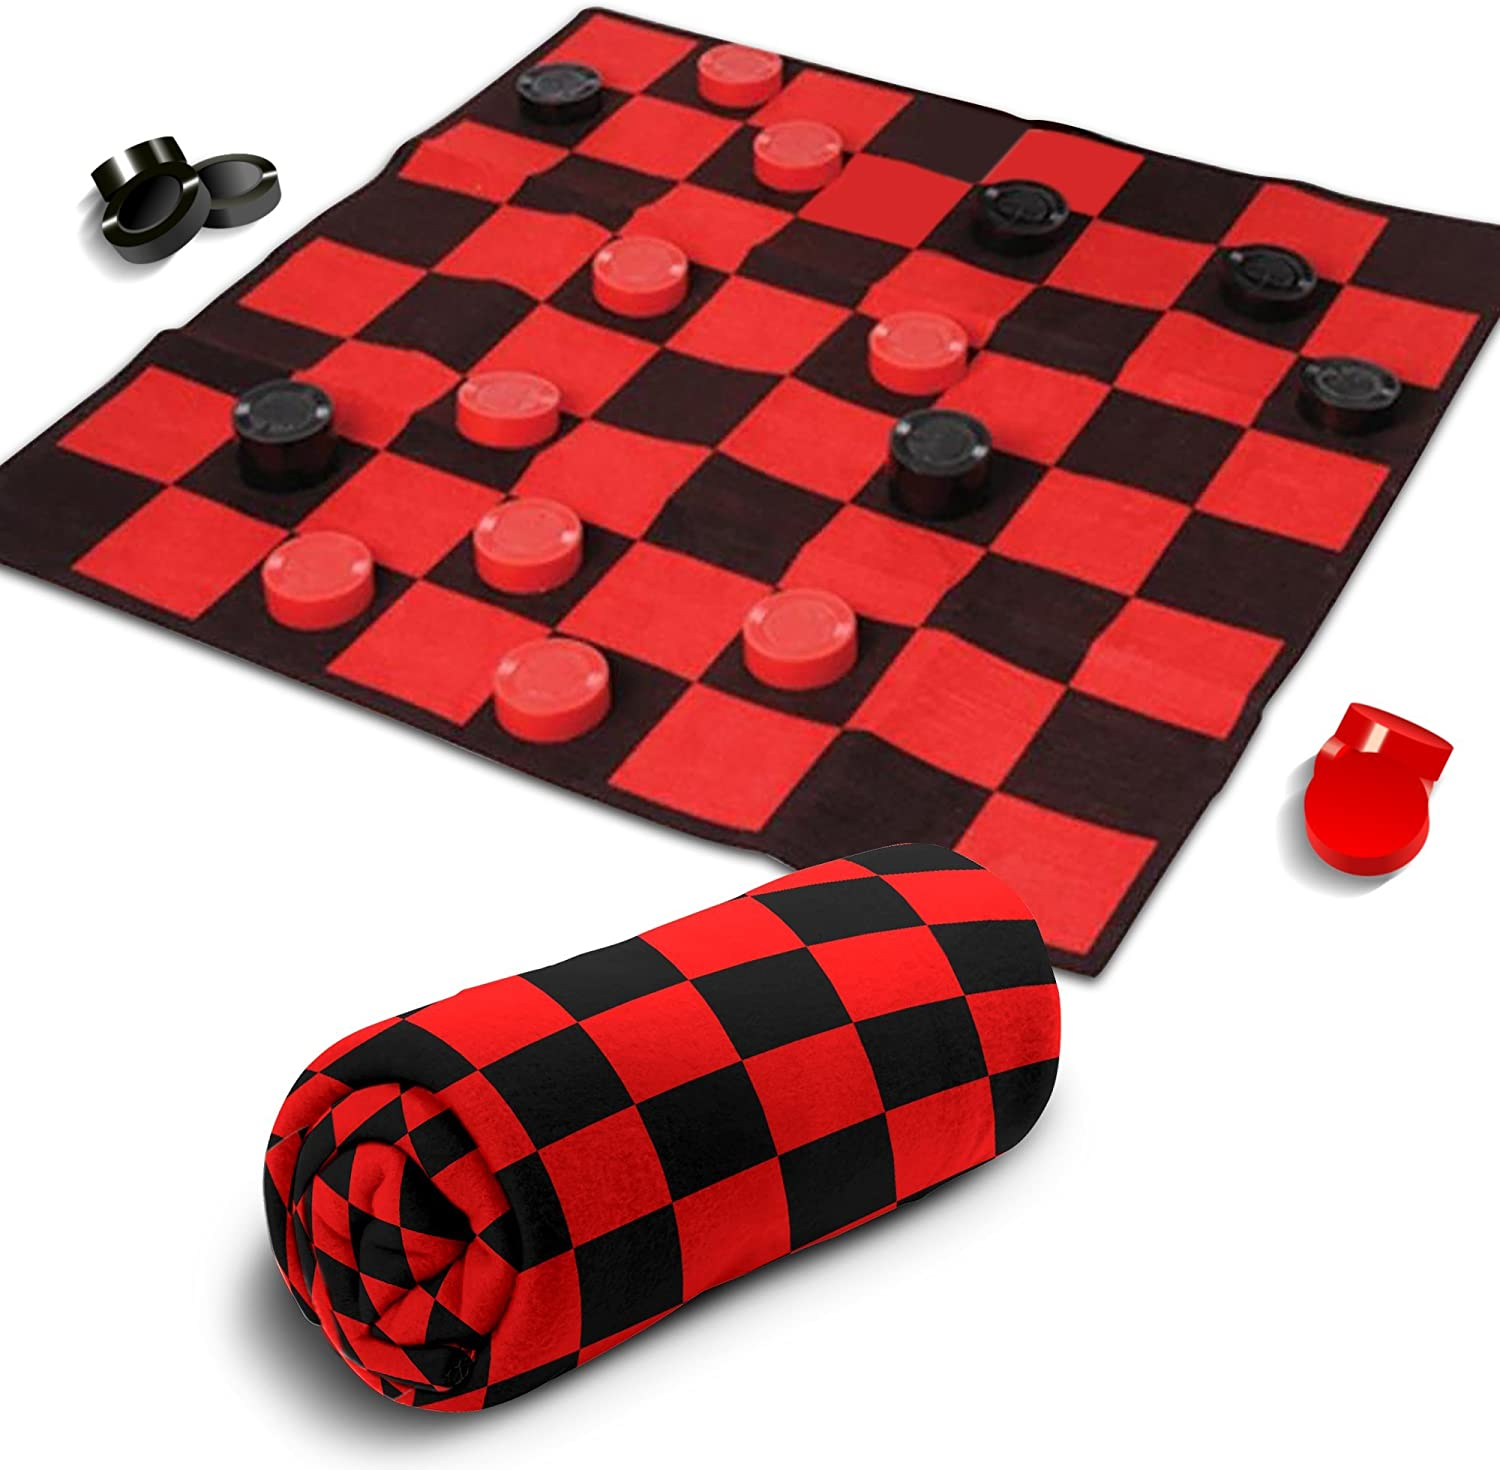 Giant Checkers Rug Set by Gamie - 34.5 x 34.5 Inch Jumbo Checker Board